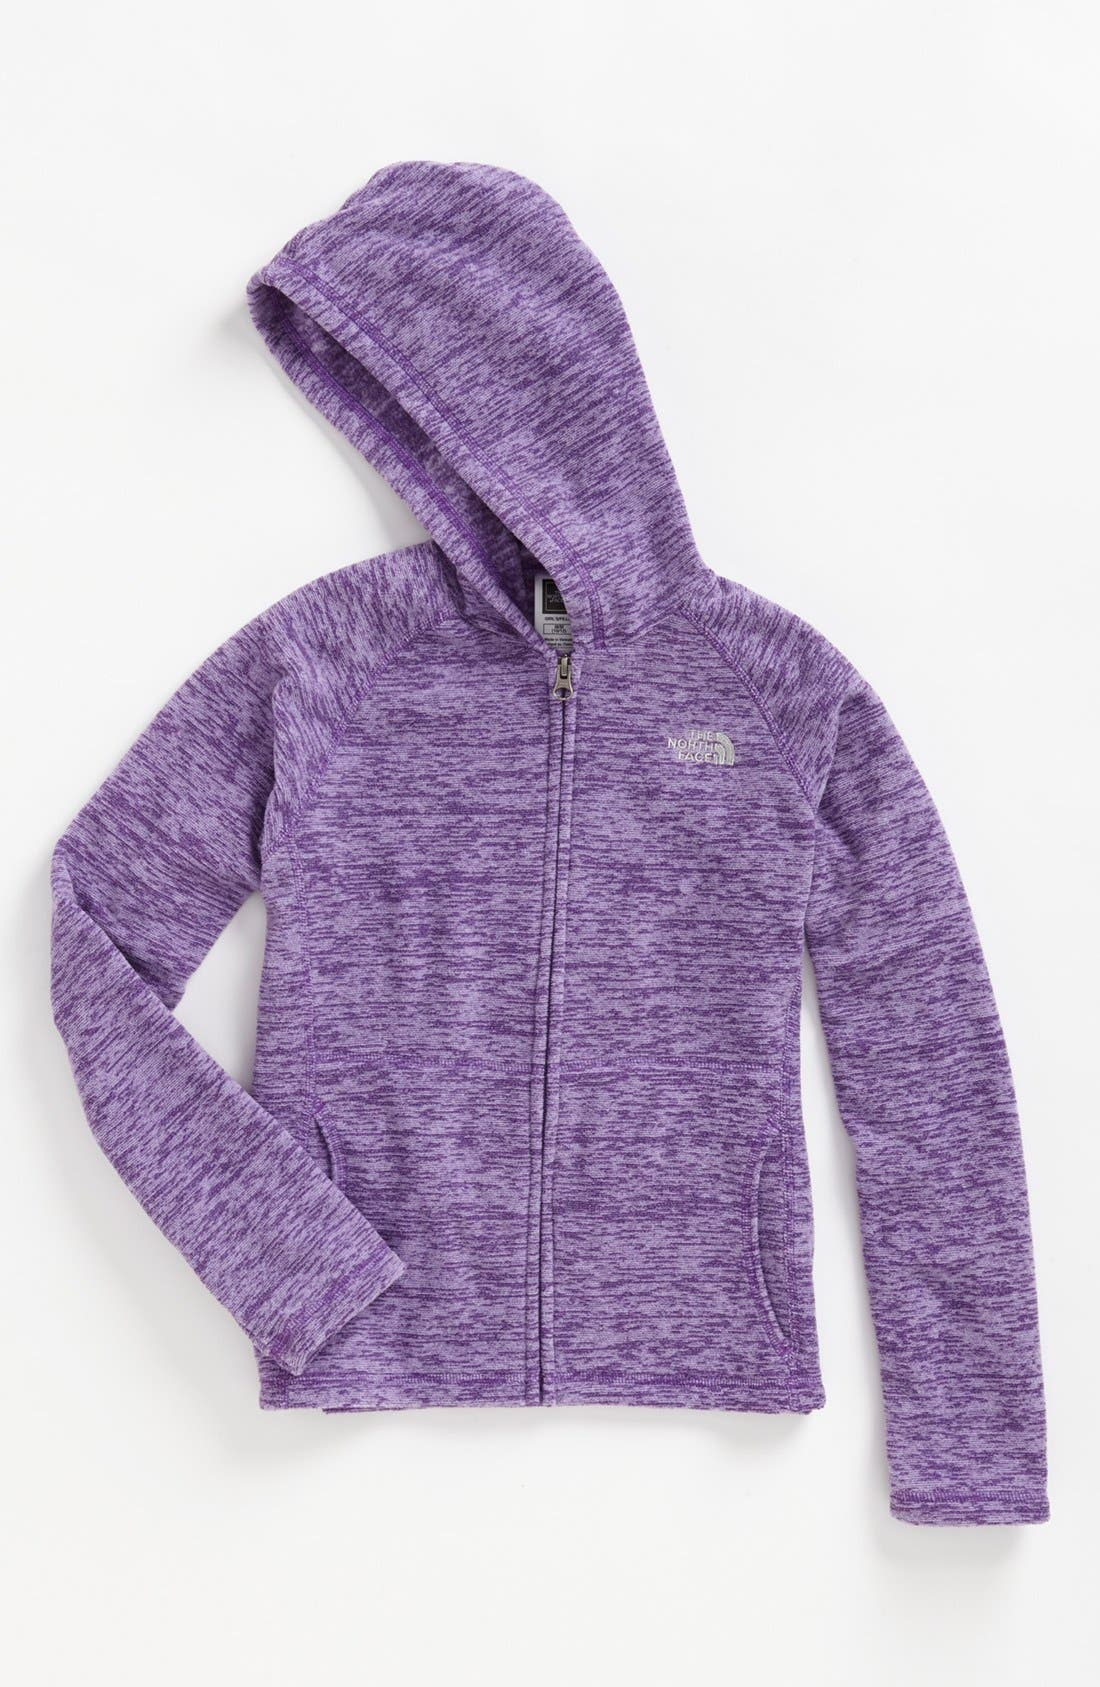 Alternate Image 1 Selected - The North Face 'Glacier' Fleece Hoodie (Little Girls & Big Girls)